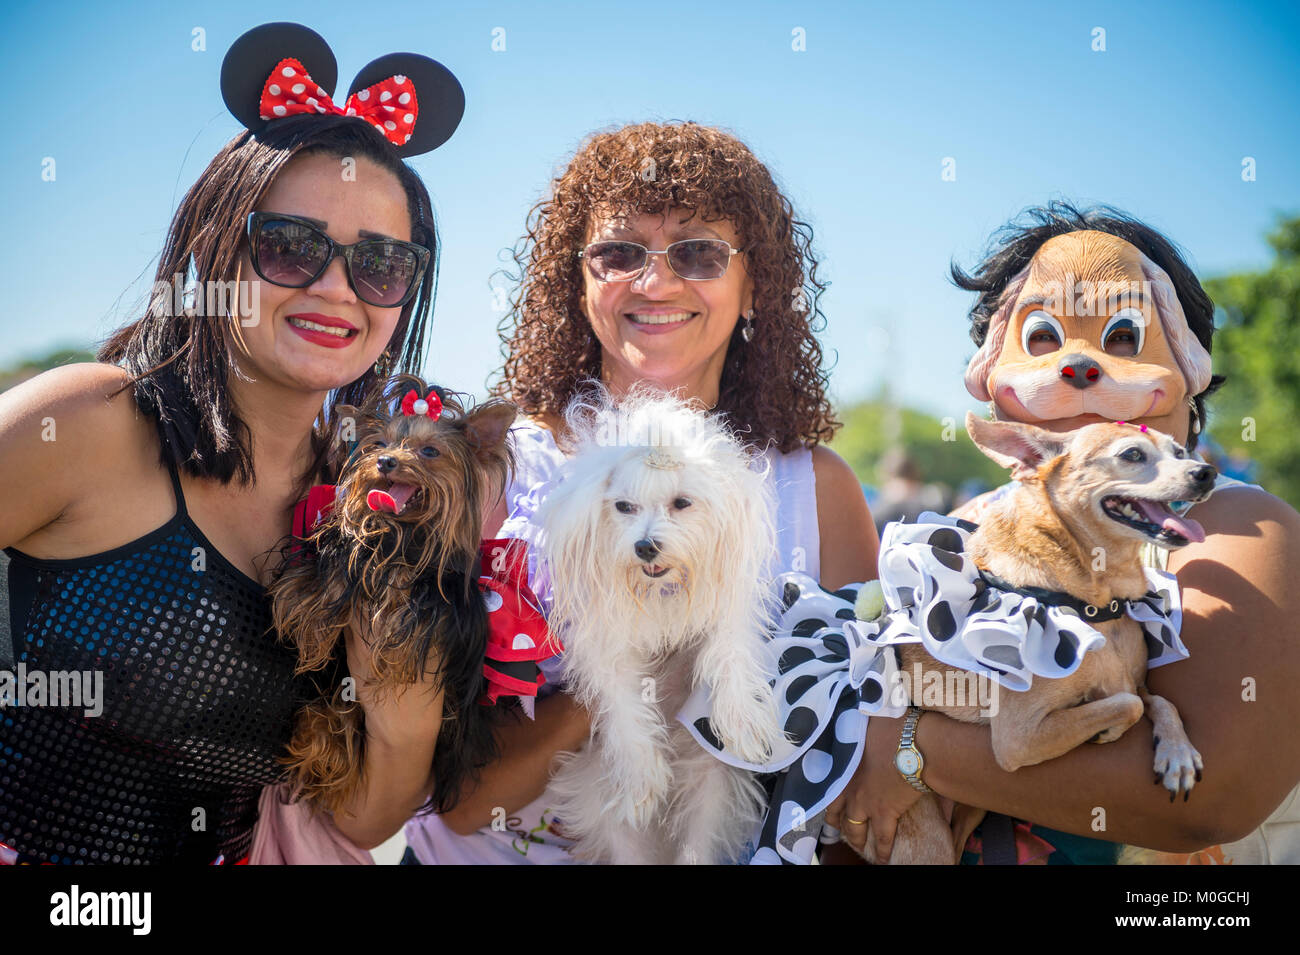 RIO DE JANEIRO - FEBRUARY 19, 2017: A group of dog owners pose with their pets dressed up for Carnival at the Blocão - Stock Image